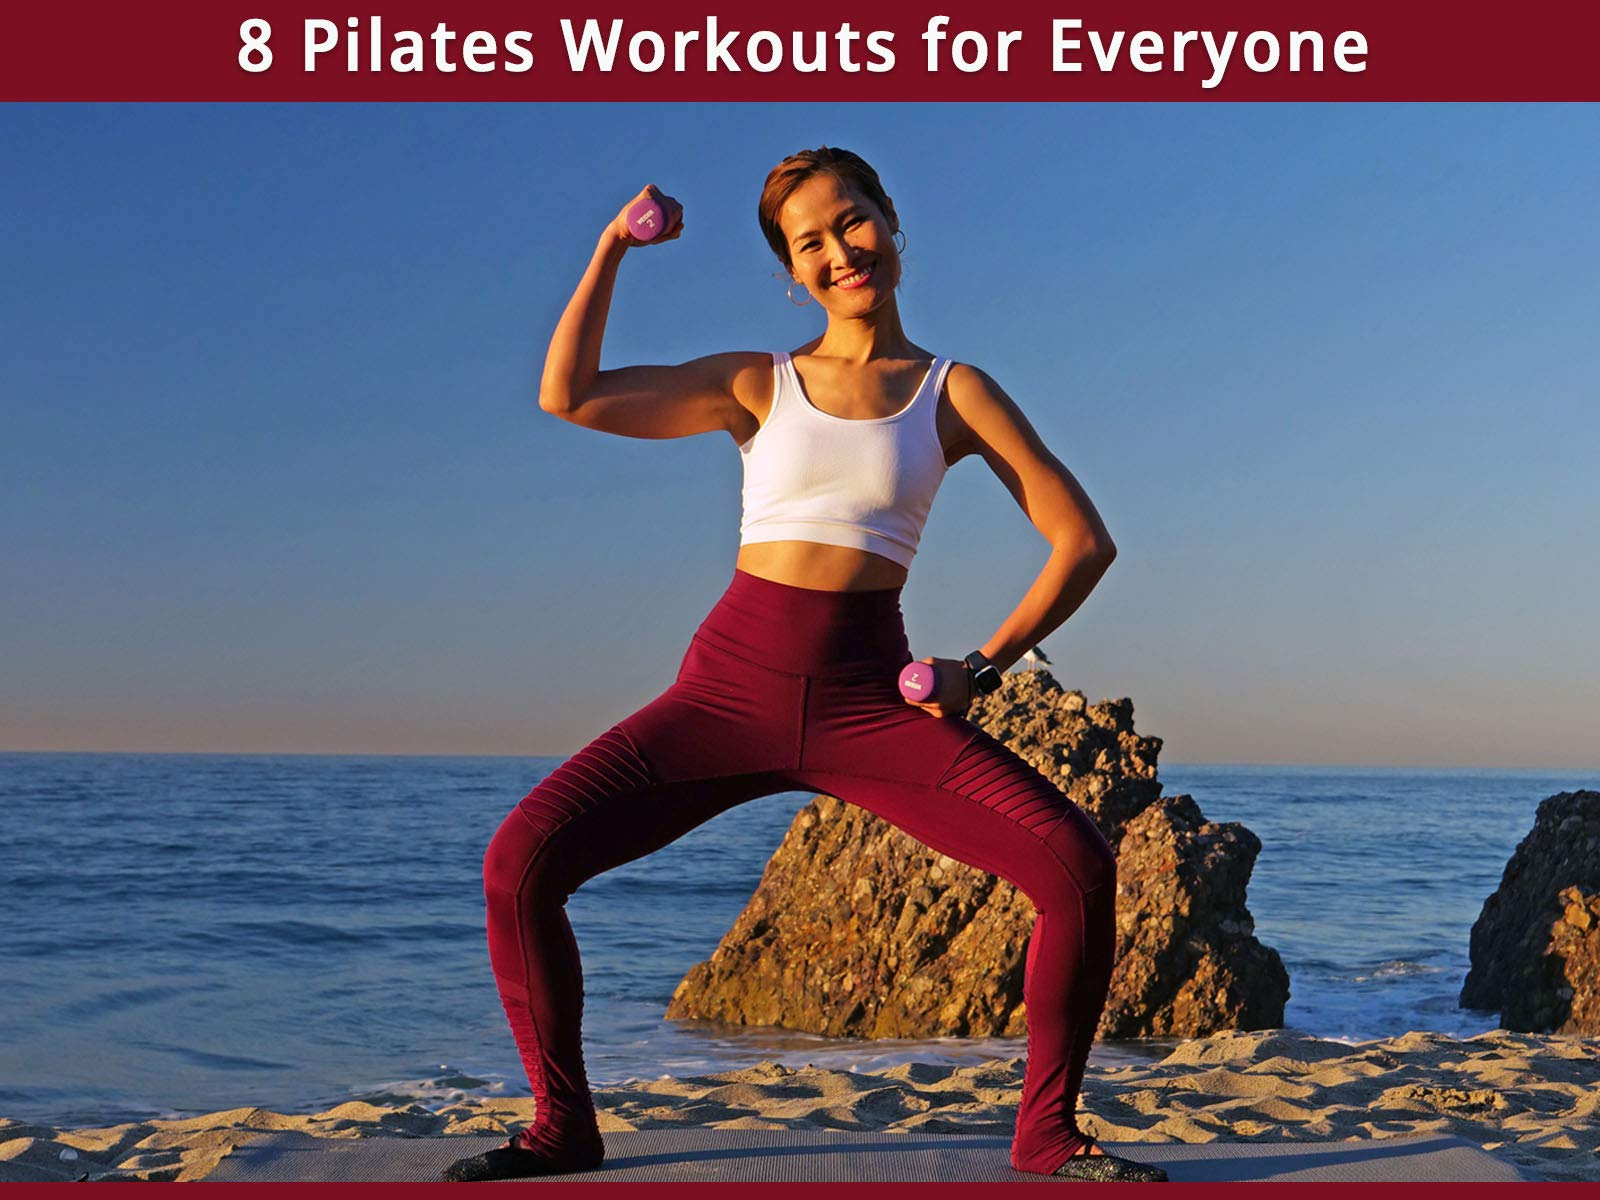 8 Pilates Workouts for Everyone - Season 1